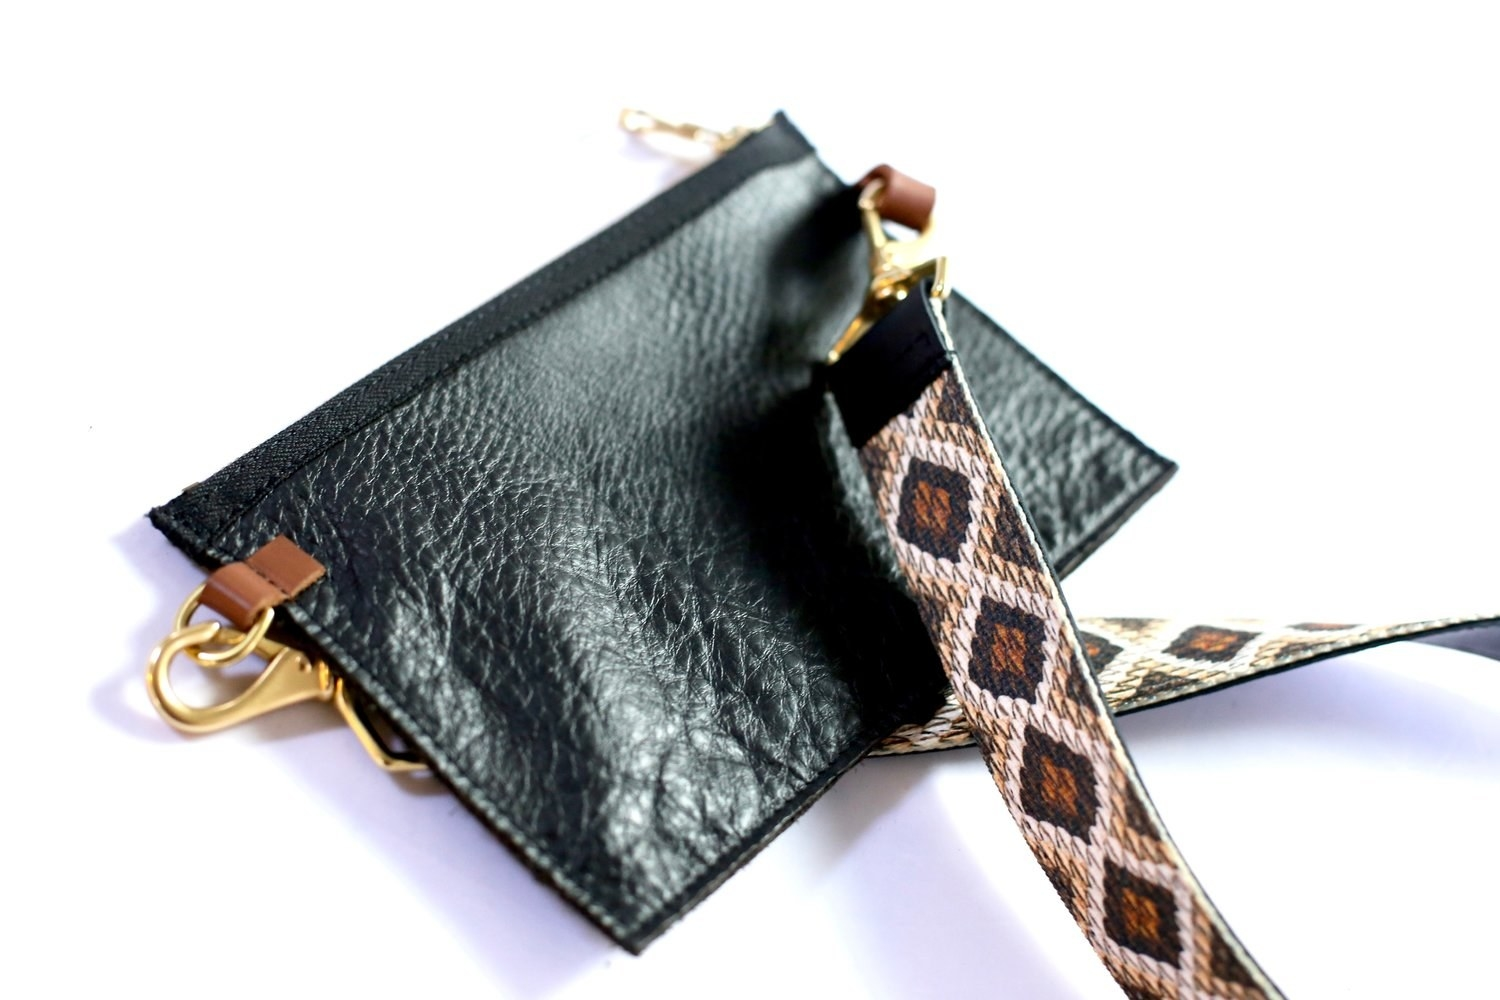 Black leather rectangular clutch with brown leather and gold clasp details and an added strap